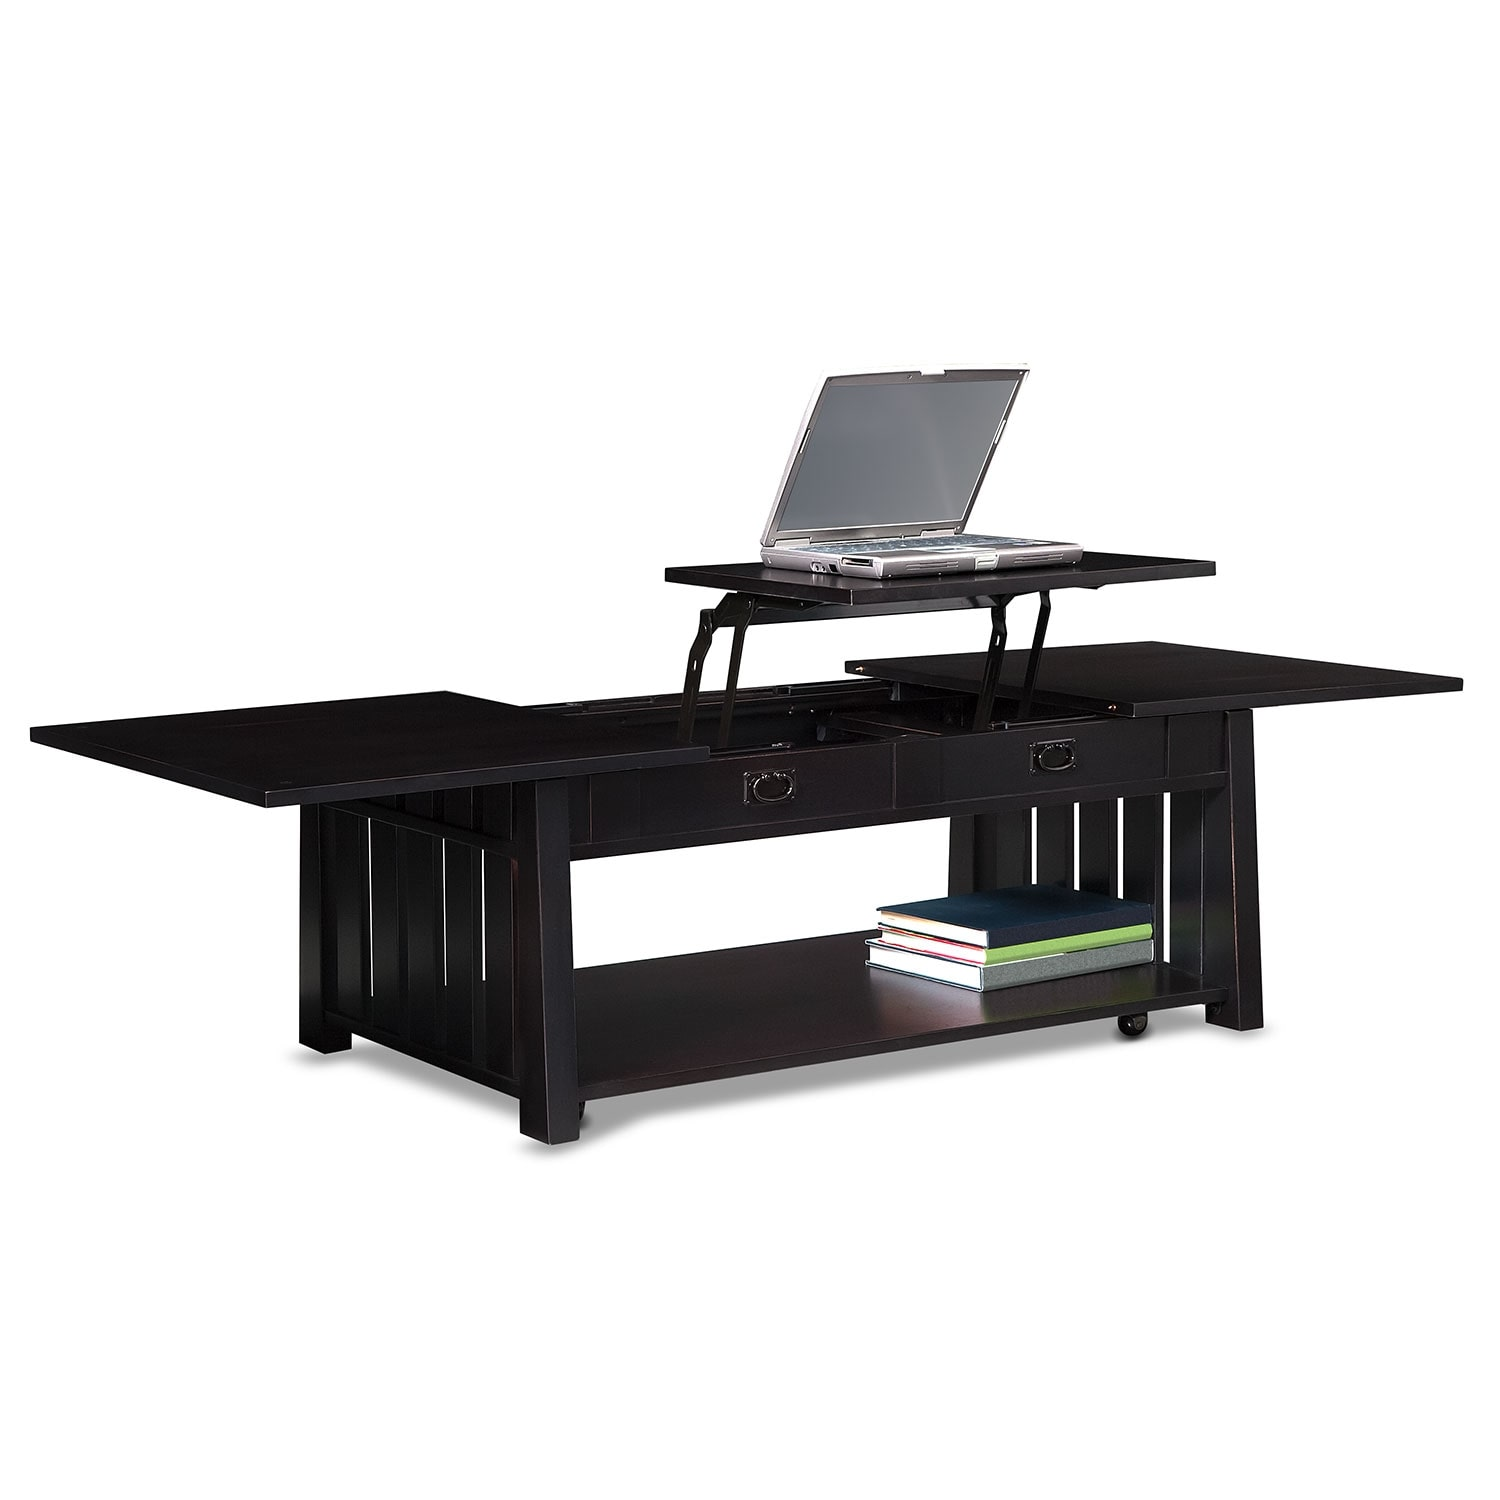 Tribute Lift-Top Cocktail Table - Black